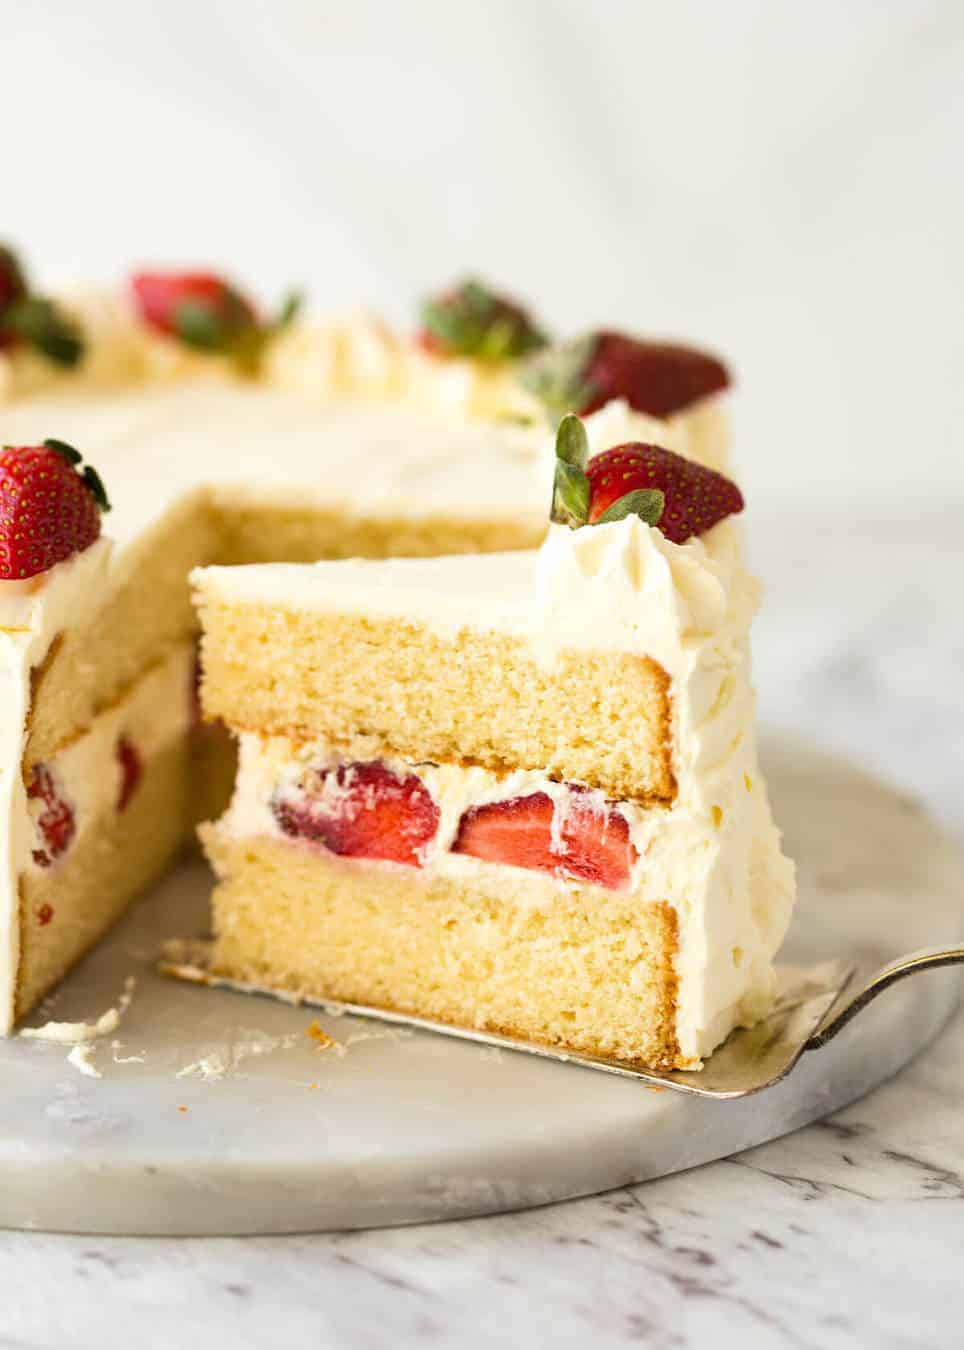 An exceptional, classic Vanilla Sponge Cake. Tender crumb, moist, keeps well for 3 days. A Cooks' Illustrated recipe. recipetineats.com